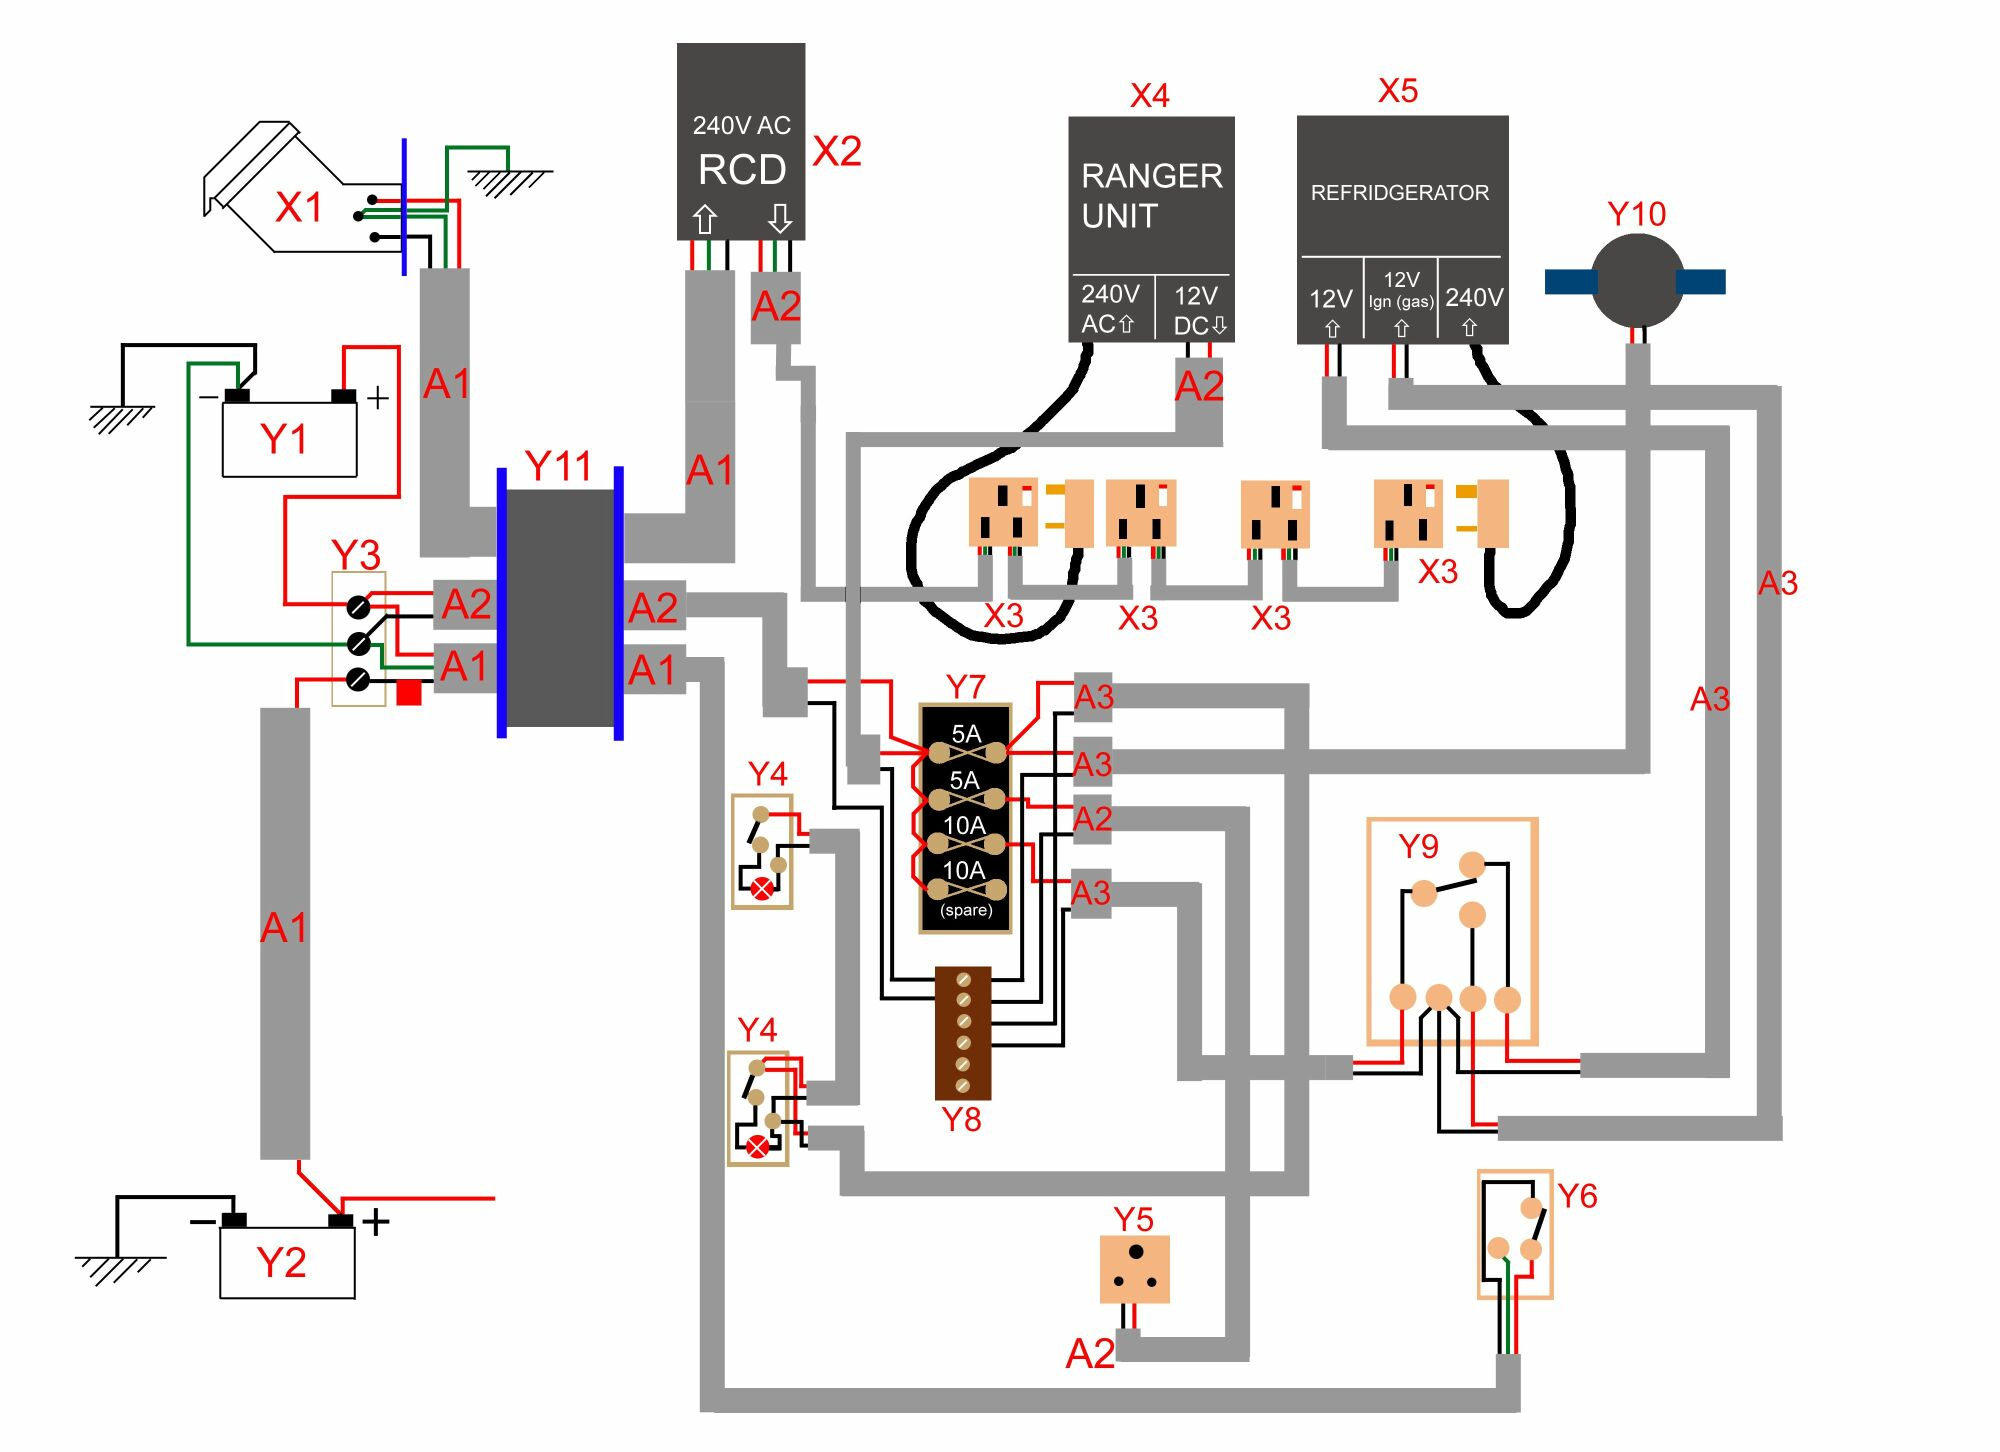 Wiring Diagram 12V | Wiring Diagram - Trailer Wiring Diagram 3 Way